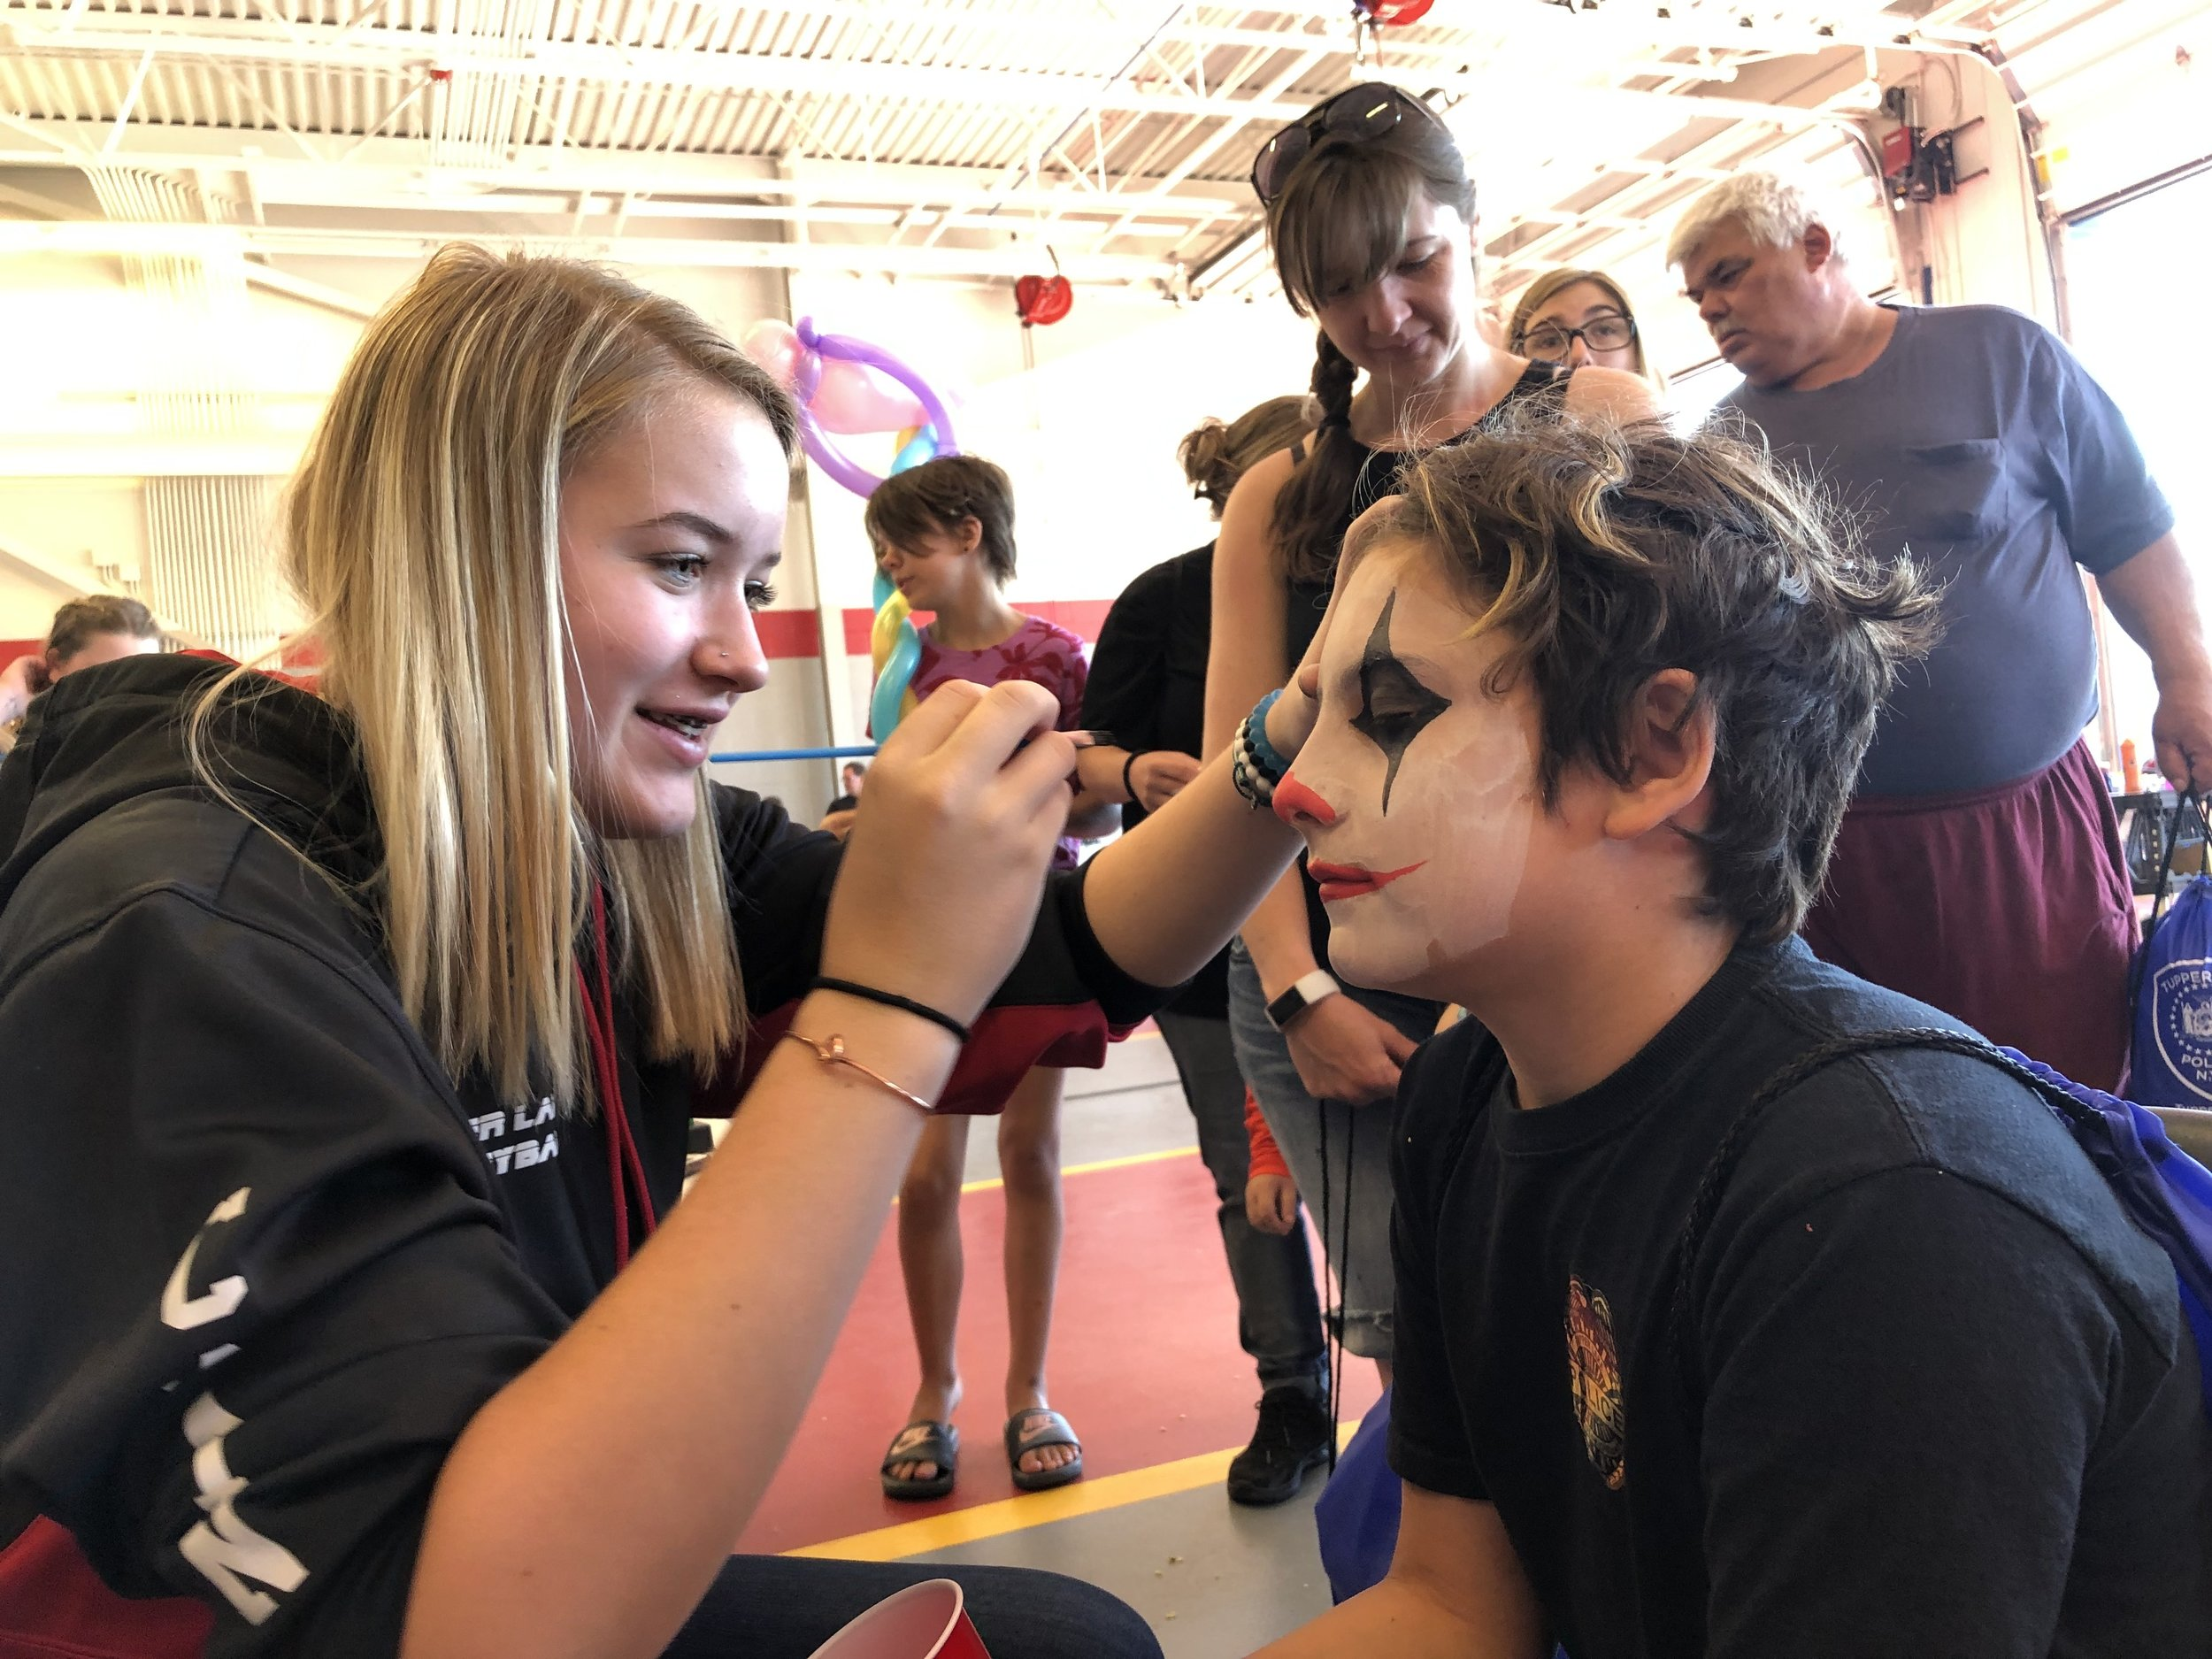 Inside the fire station Saturday were over a dozen booths where children could get free things, including face painting. In the photo Tanner Varden was getting his face decorated by Elaina Daniels.